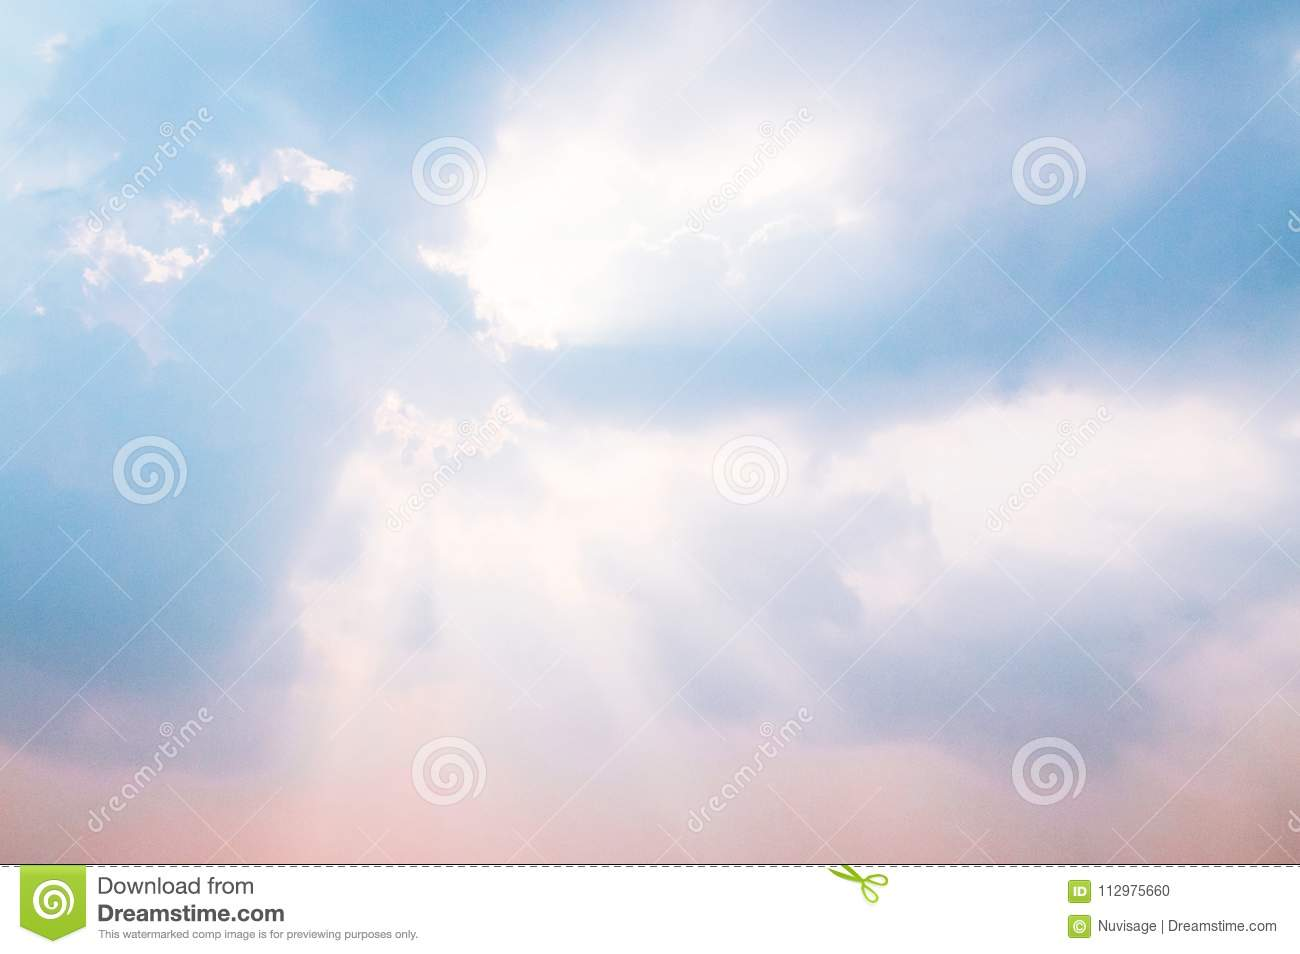 Blue sky and clouds with sun beam god light behind clouds